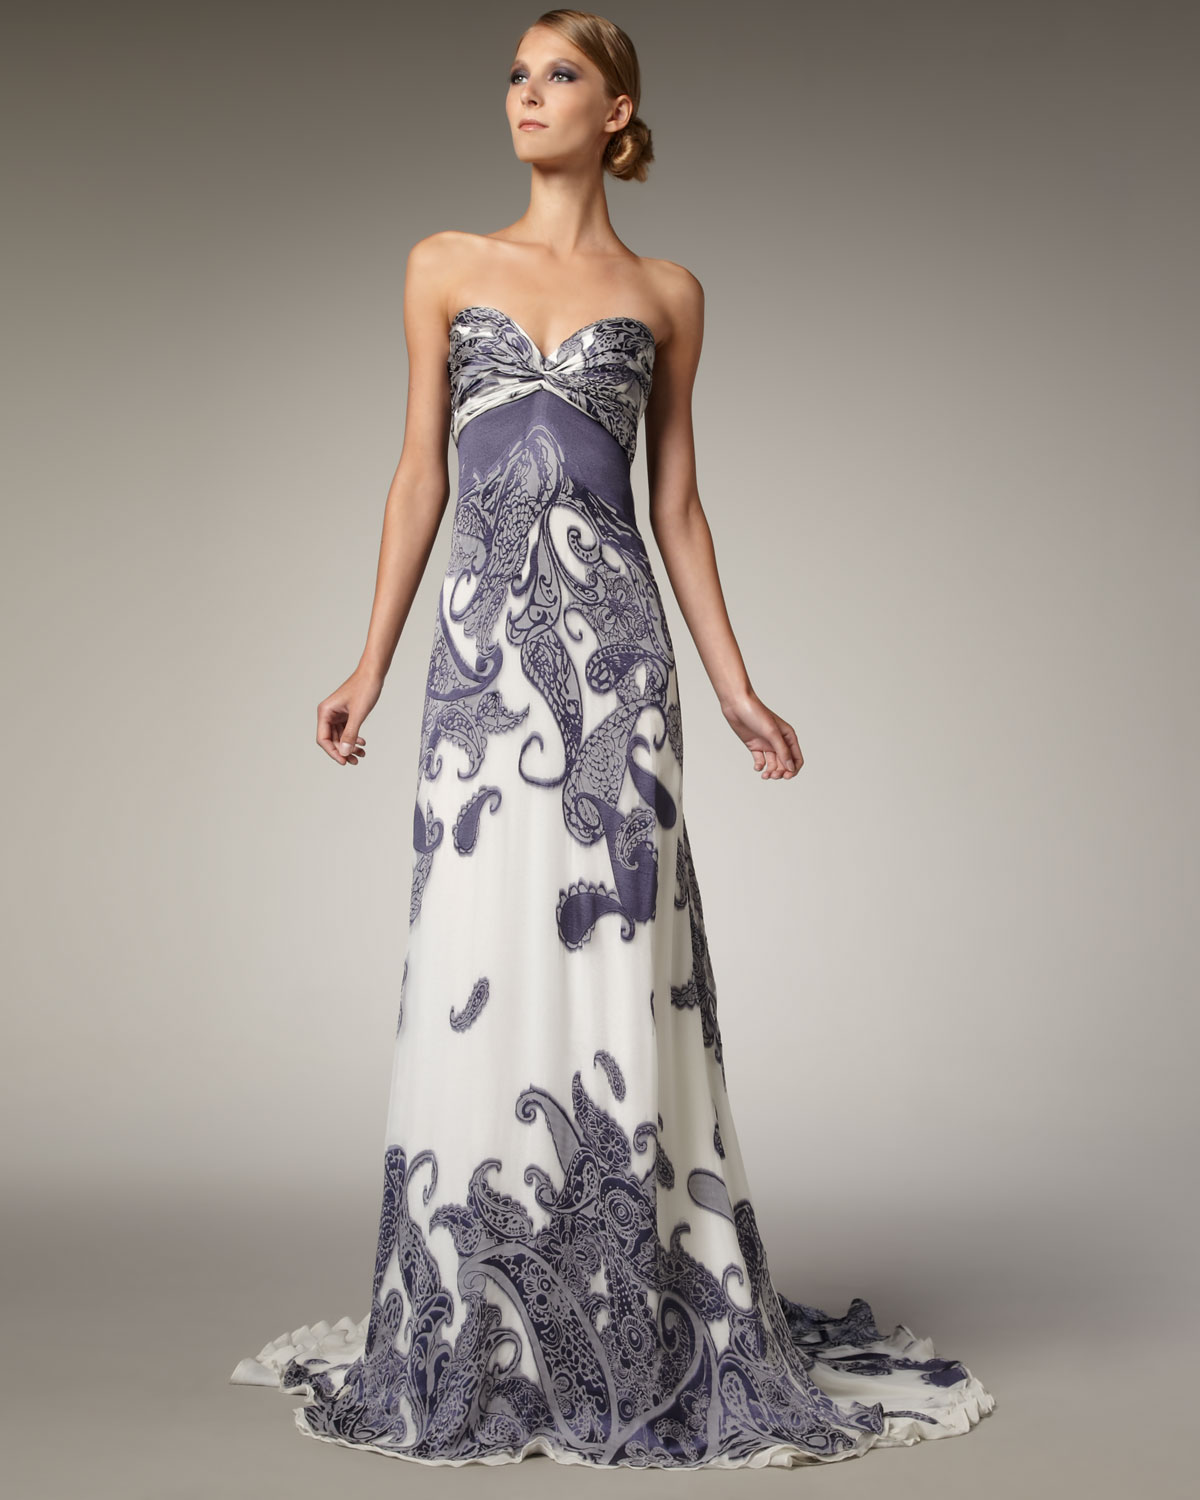 Lyst - Naeem Khan Strapless Paisley Jacquard Gown in Purple